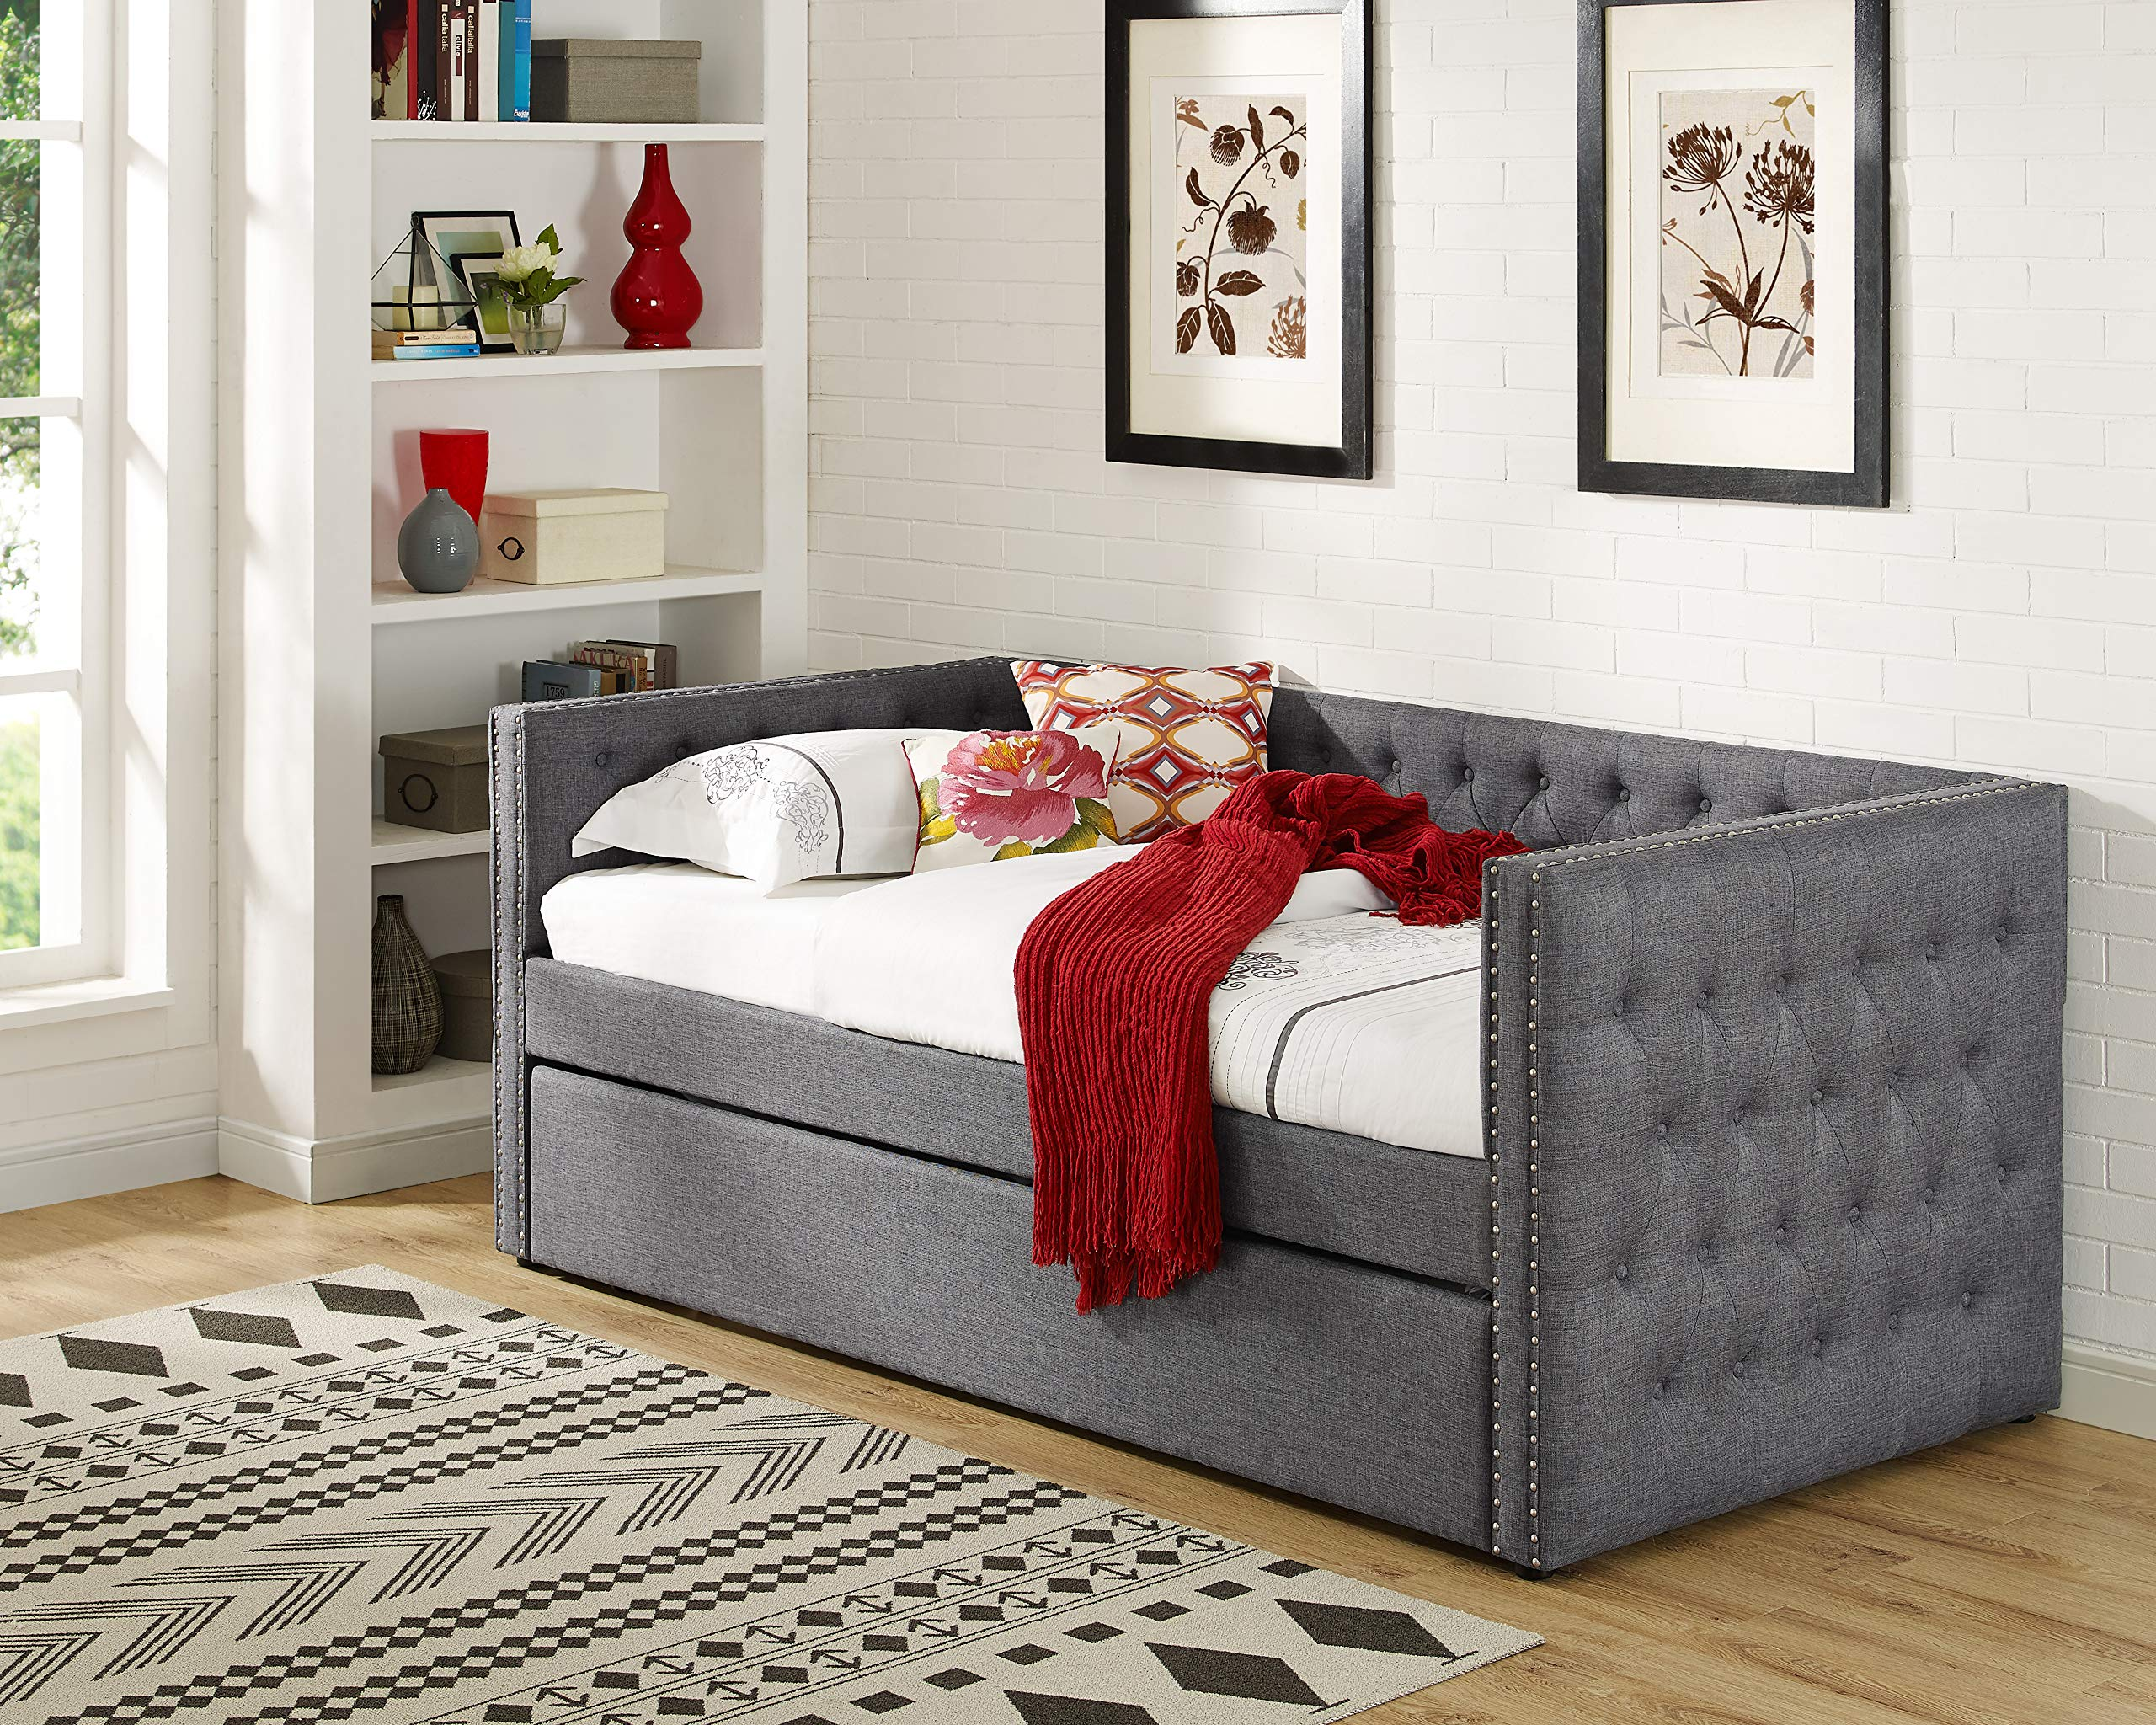 Best Master Furniture LT001 Laura Tufted Daybed + Trundle, Twin, Grey